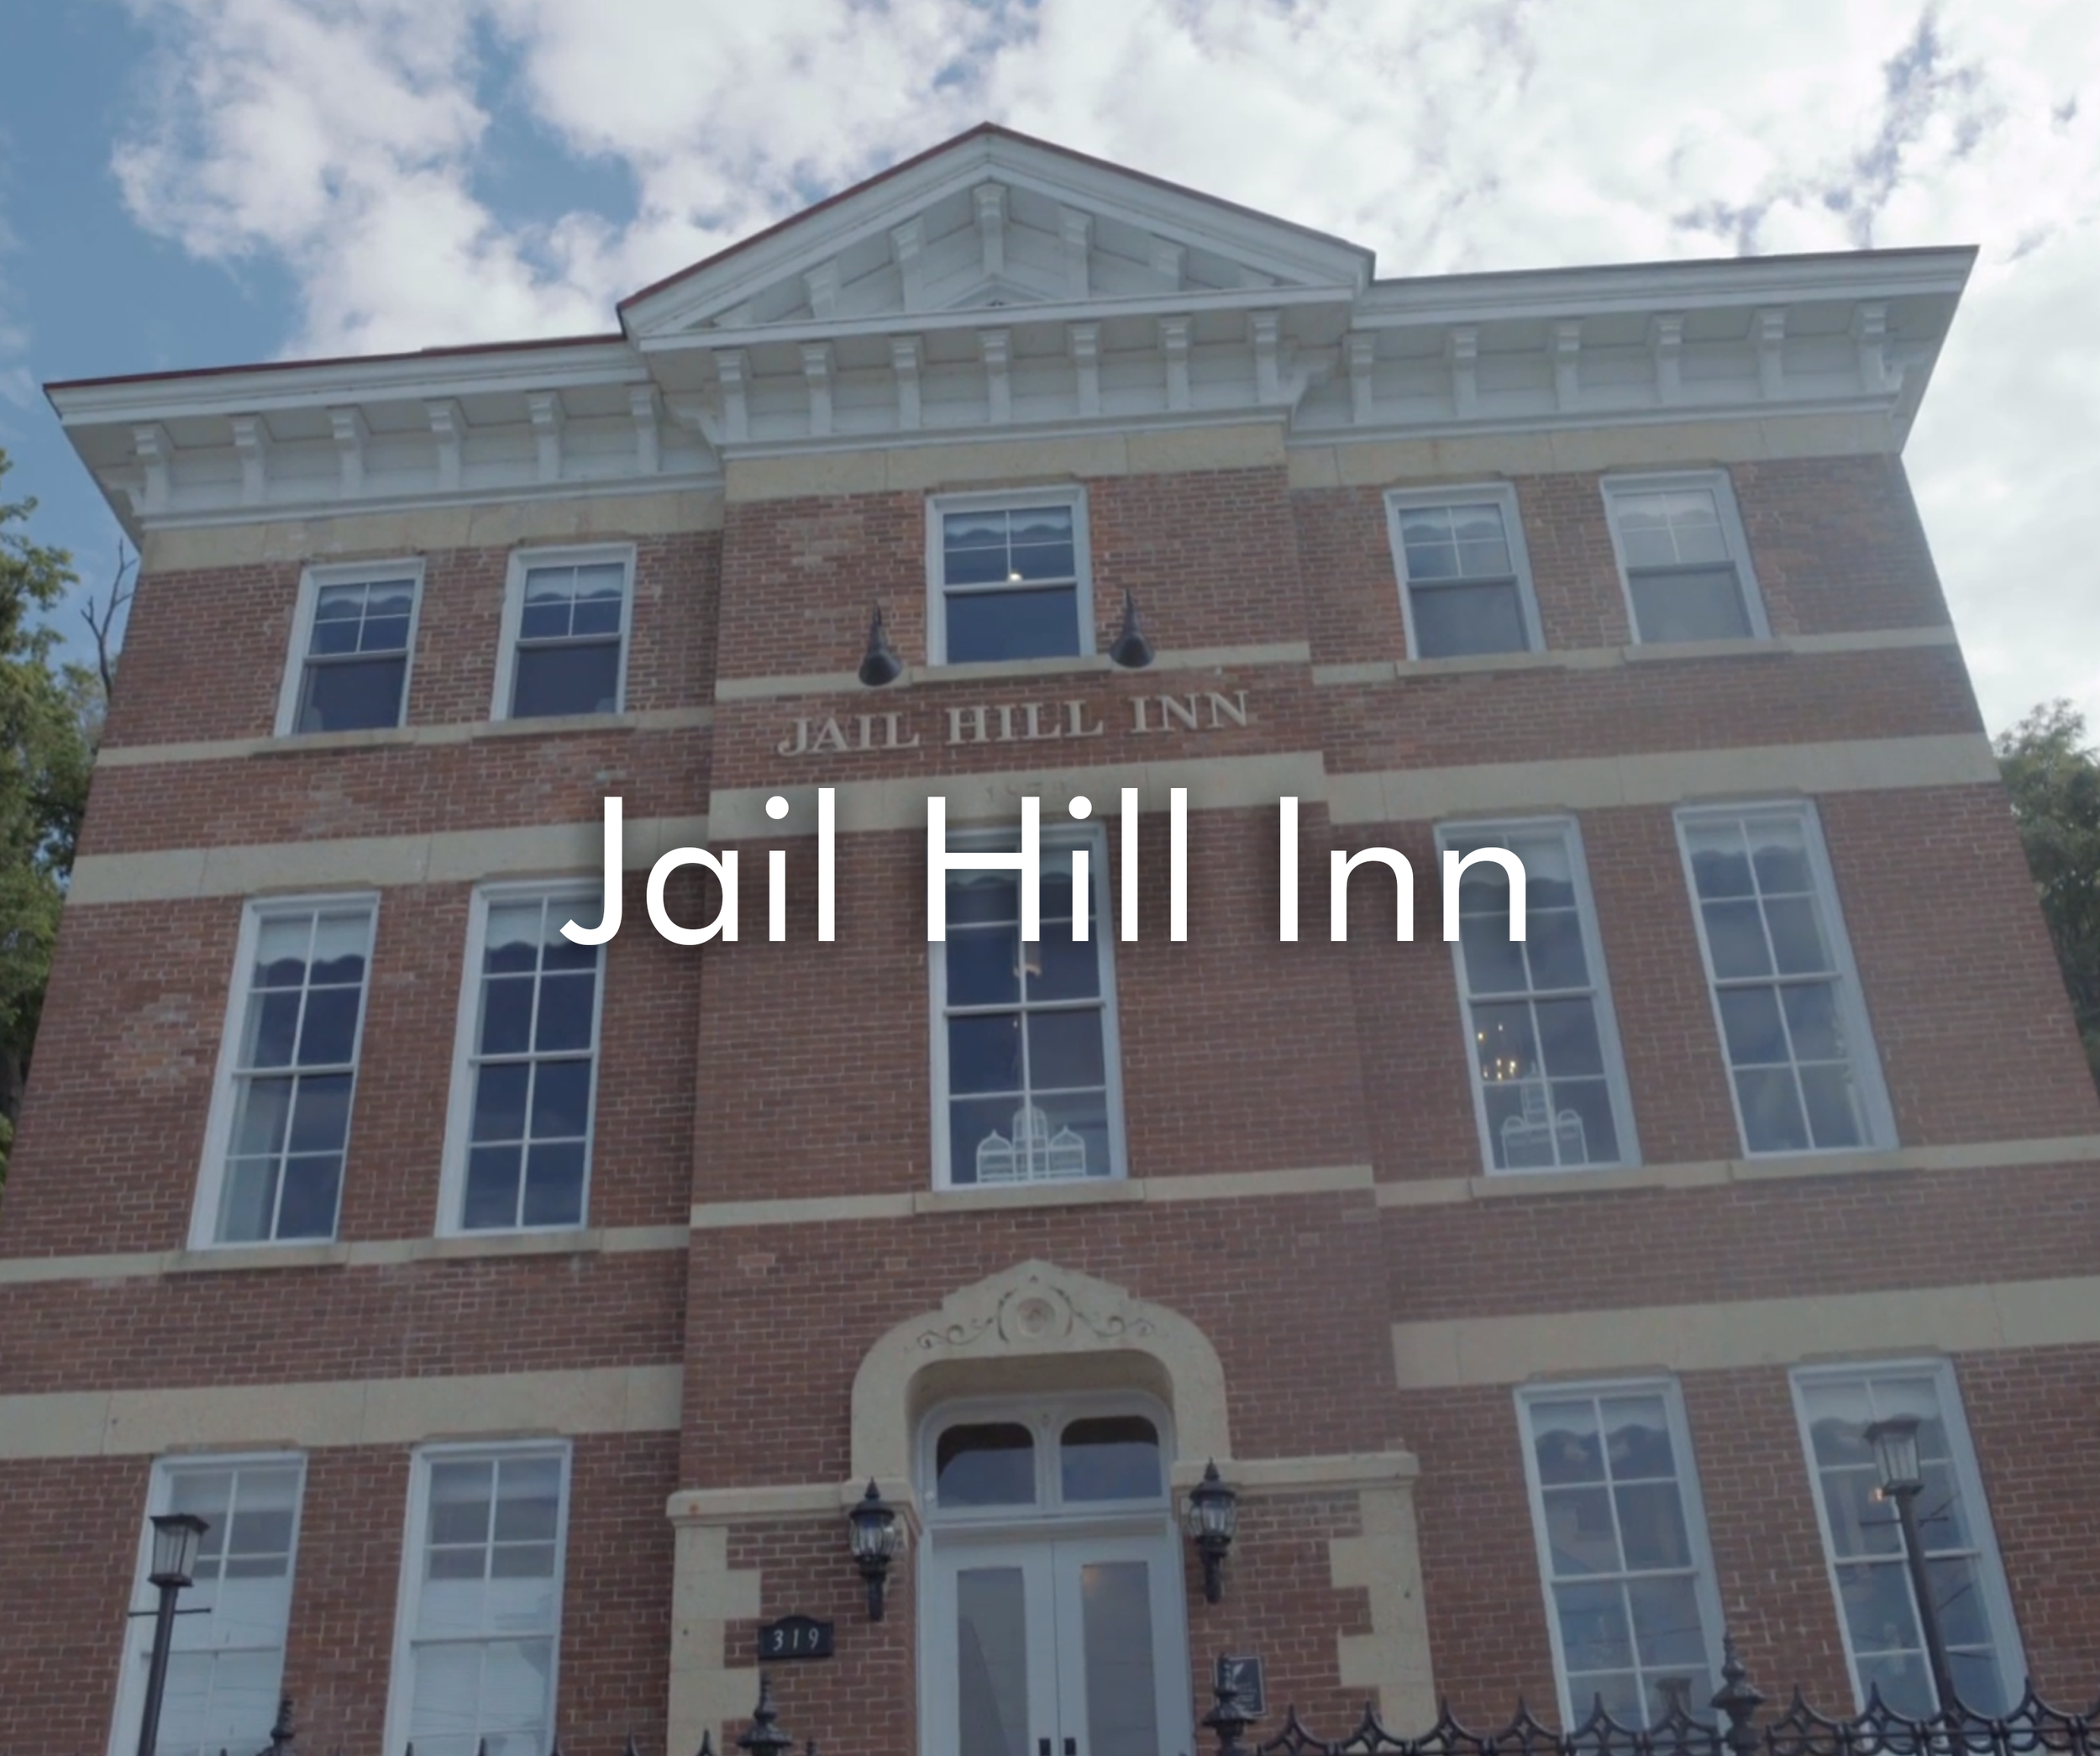 Jail Hill Inn Words.png